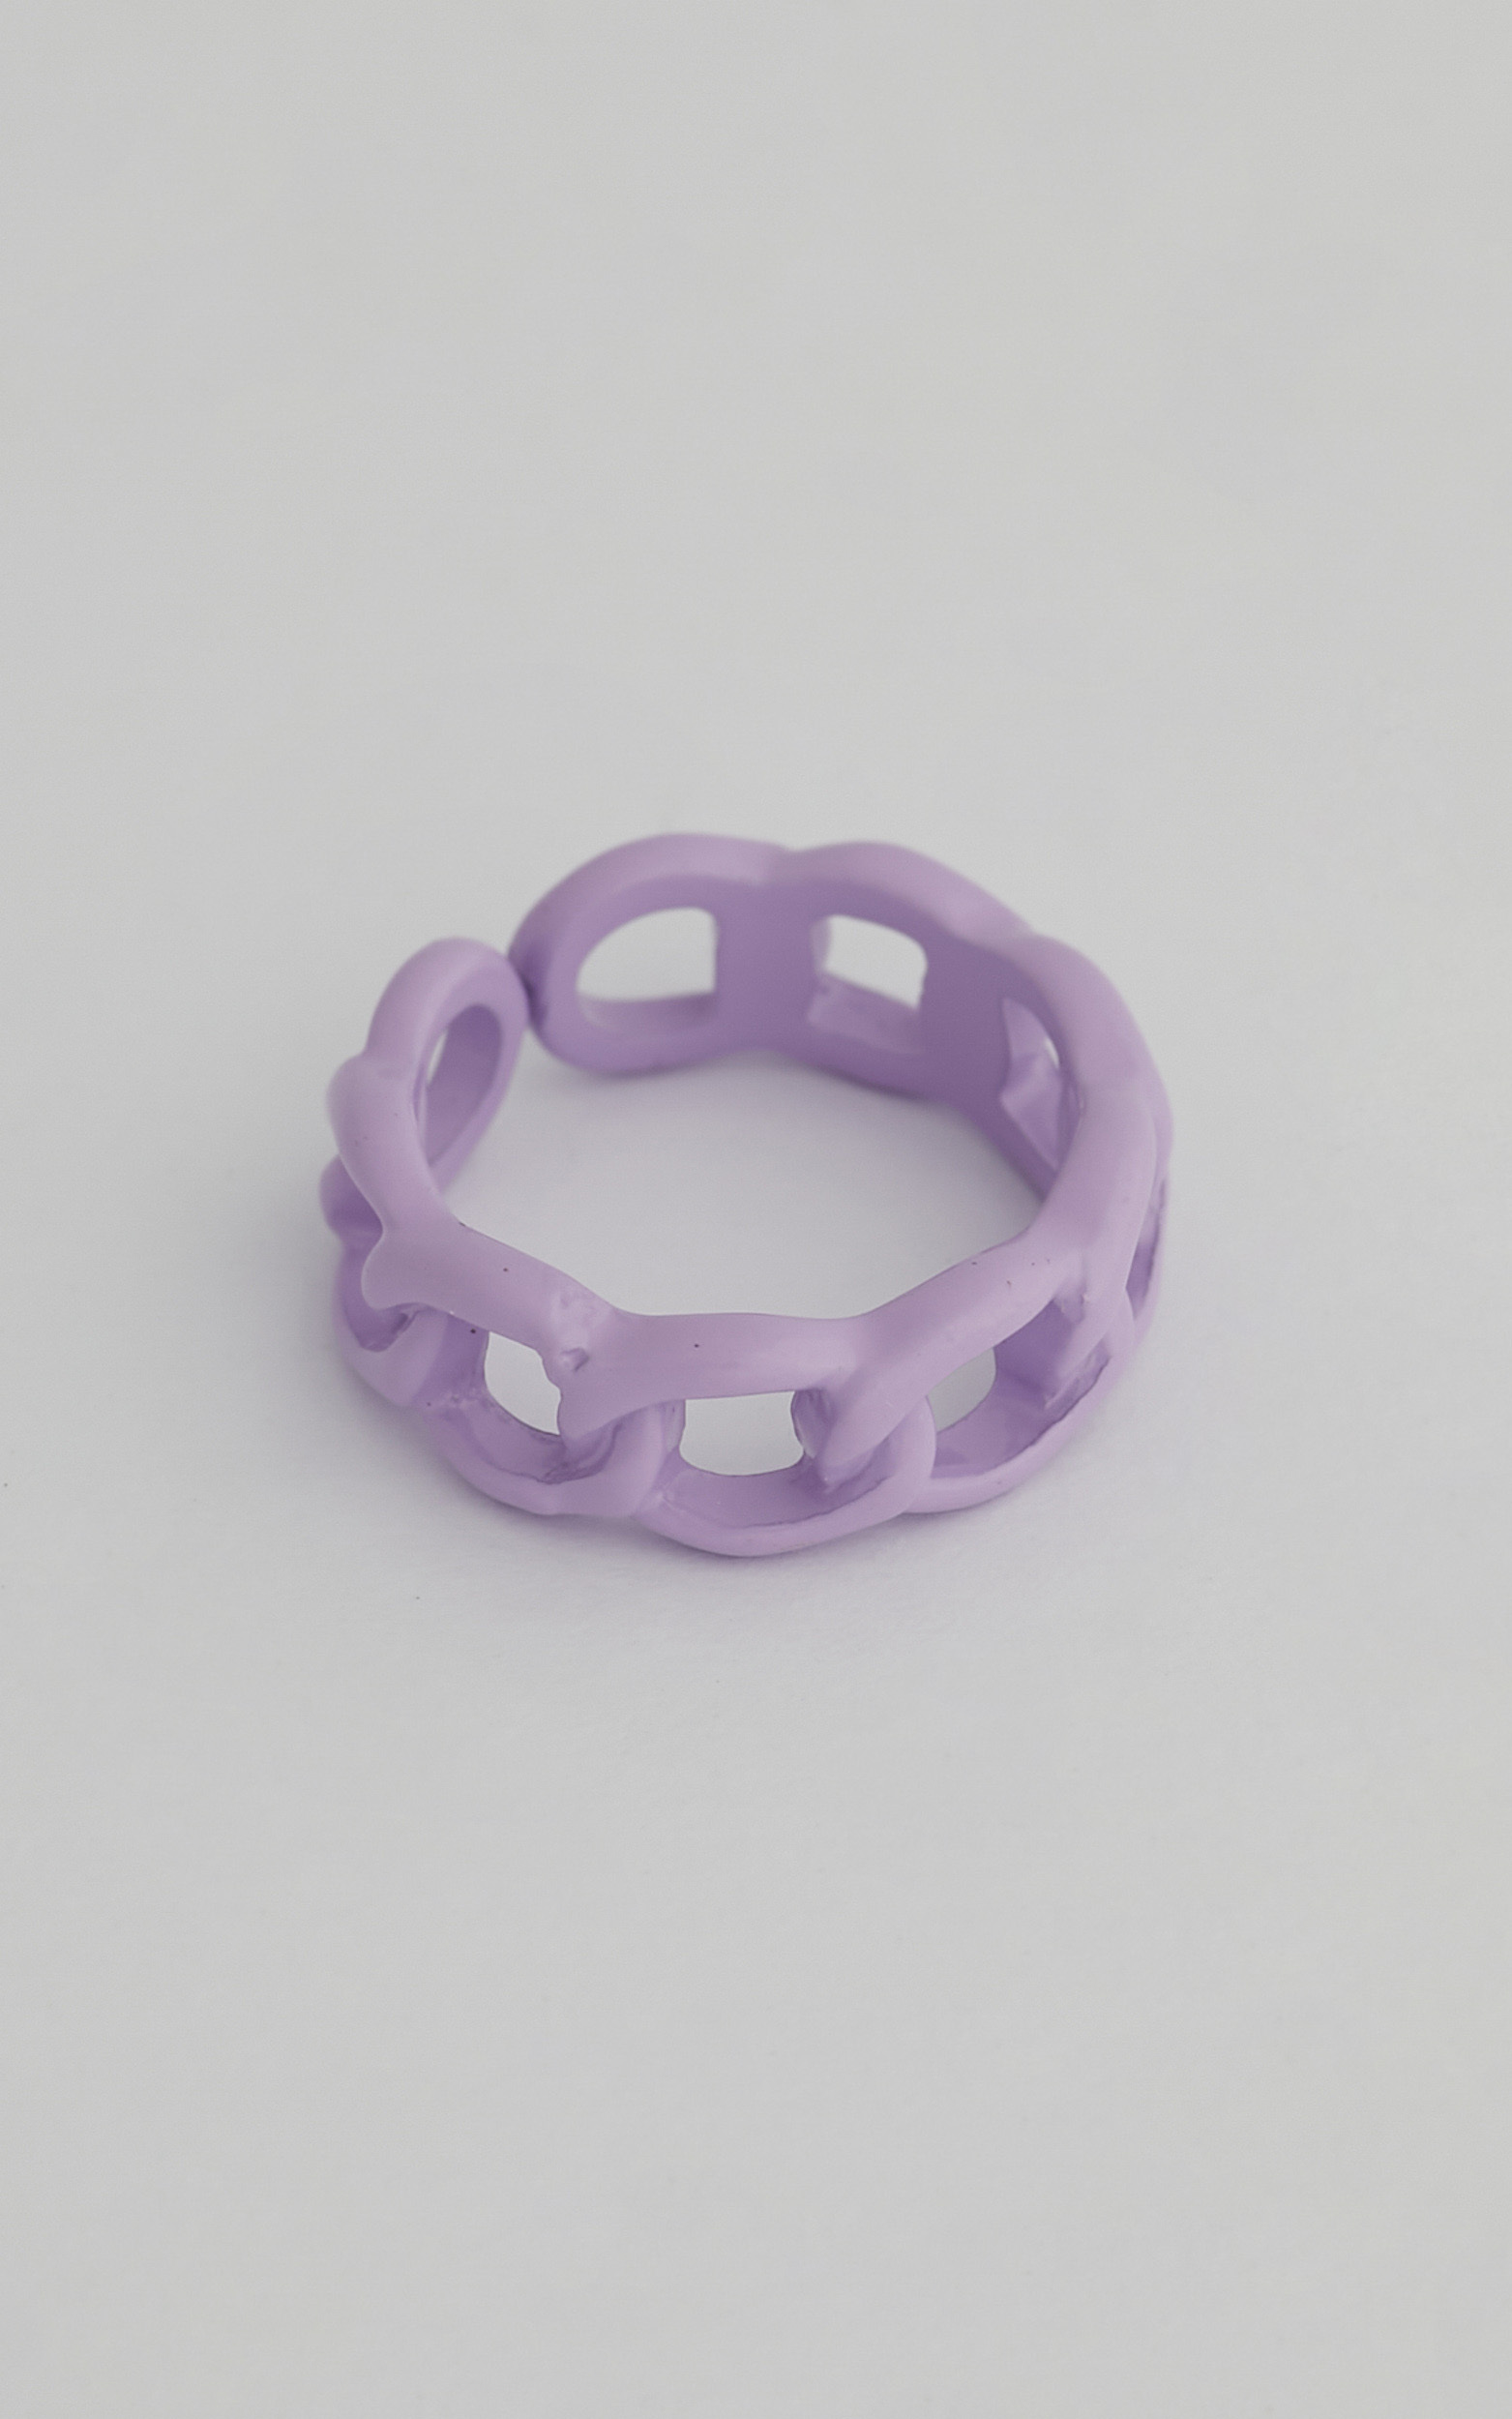 Dixie Chain Ring in Purple - NoSize, PRP2, hi-res image number null